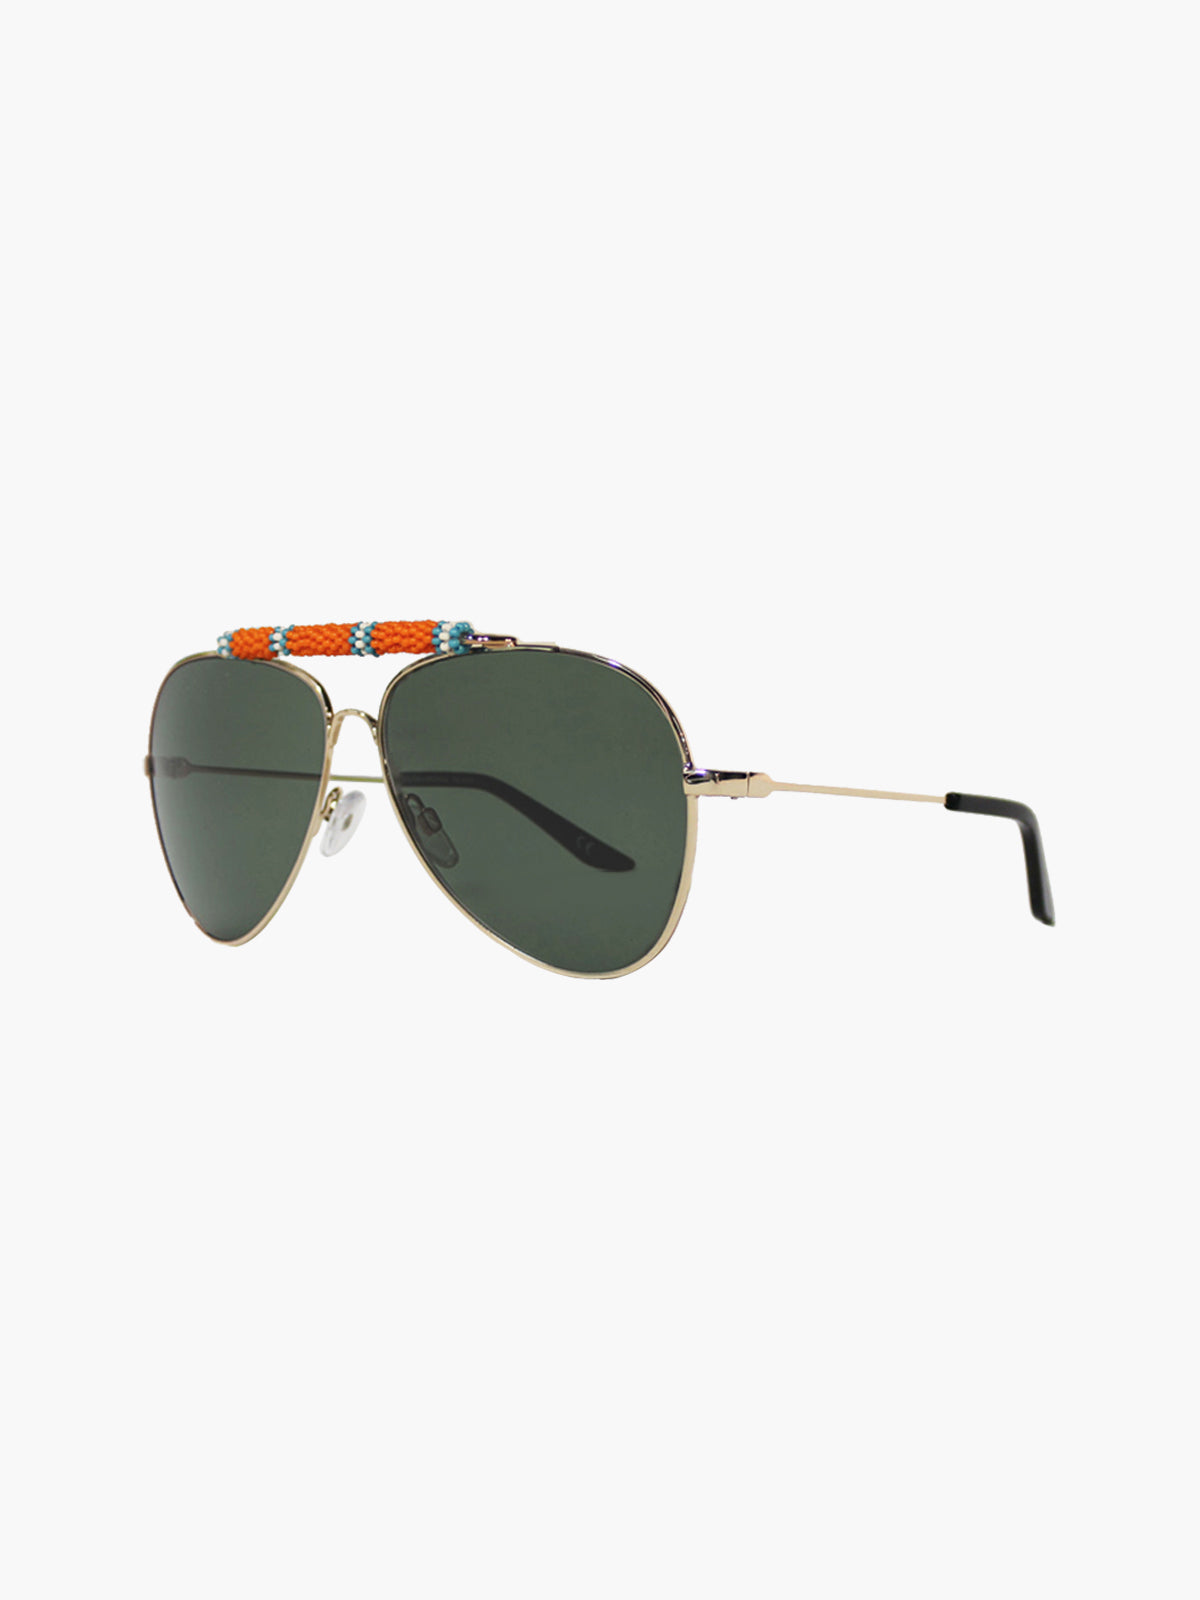 Exclusive Sunglasses | Orange/Turquoise Exclusive Sunglasses | Orange/Turquoise